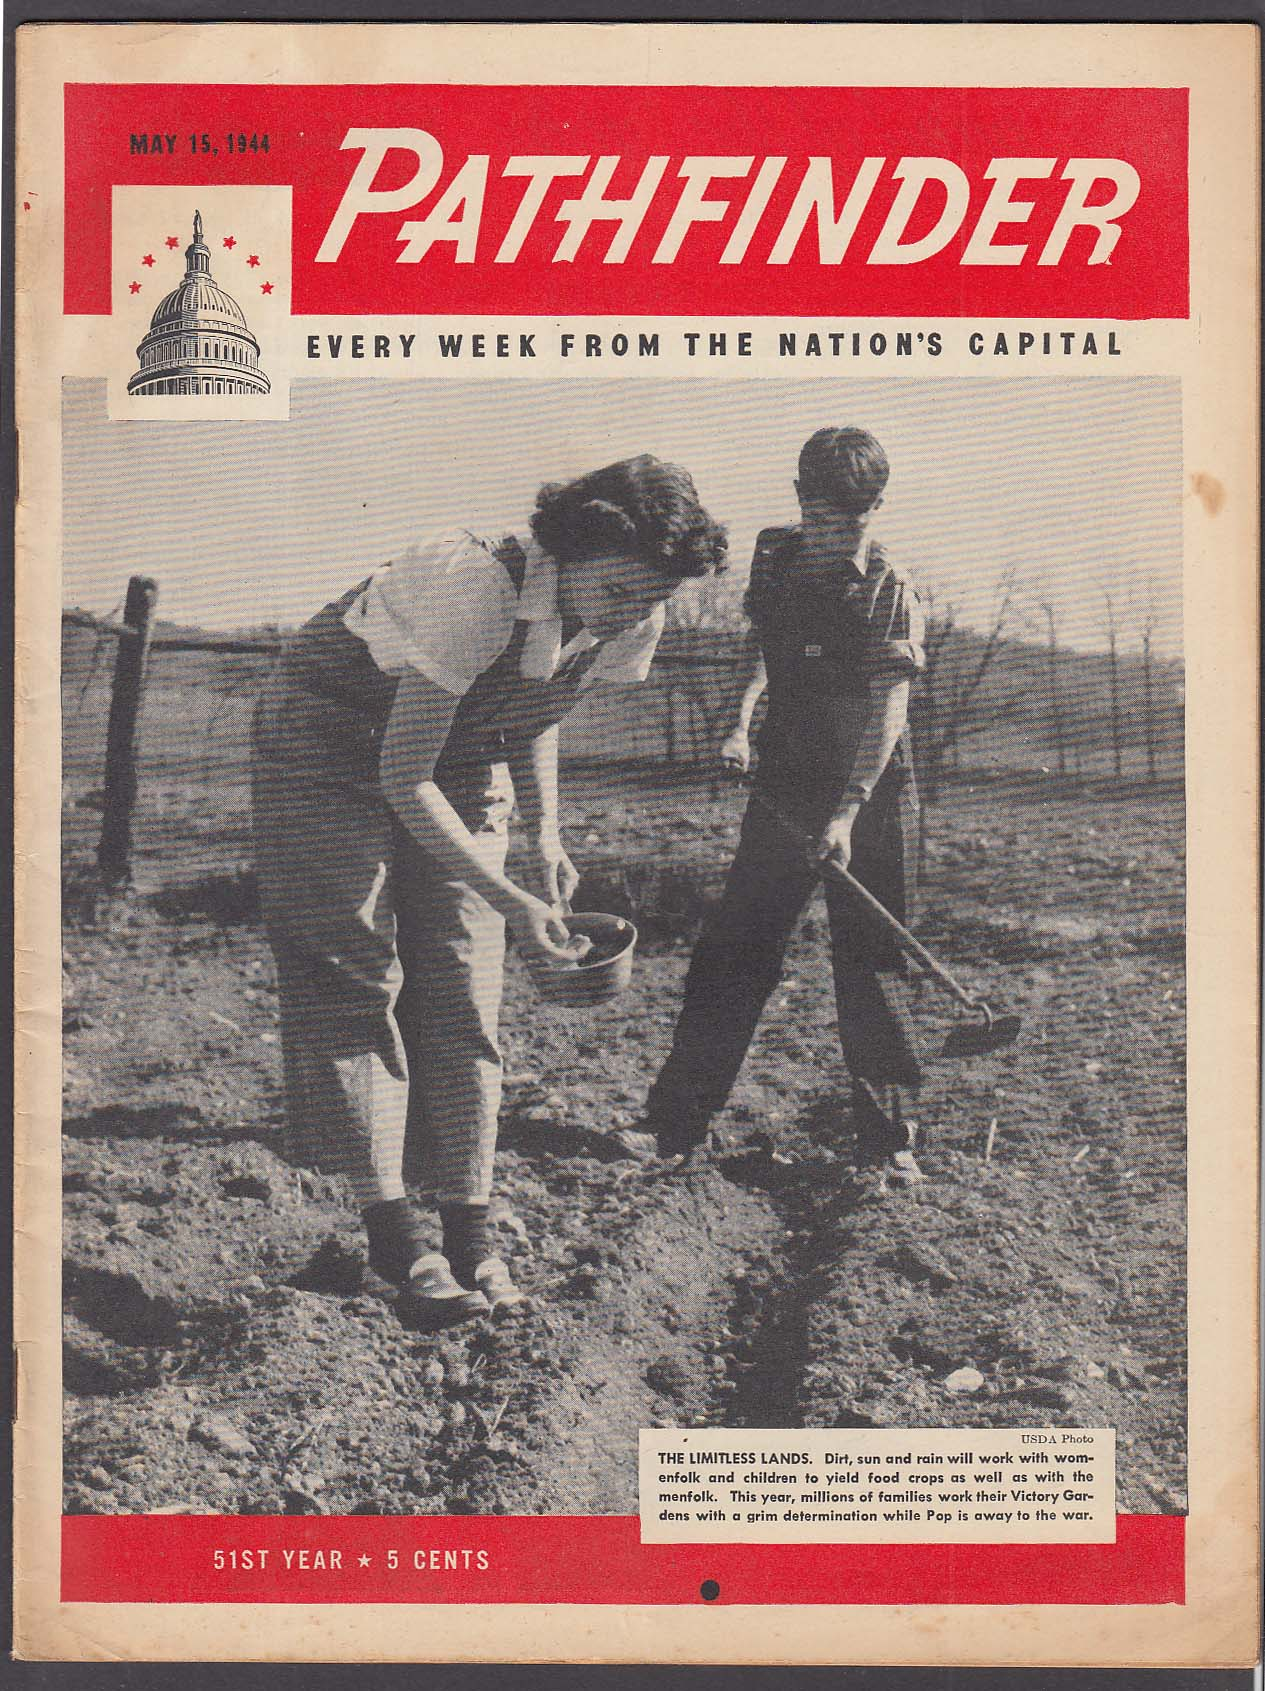 PATHFINDER Federally Owned Lands; War News from Europe & China + 5/15 1944